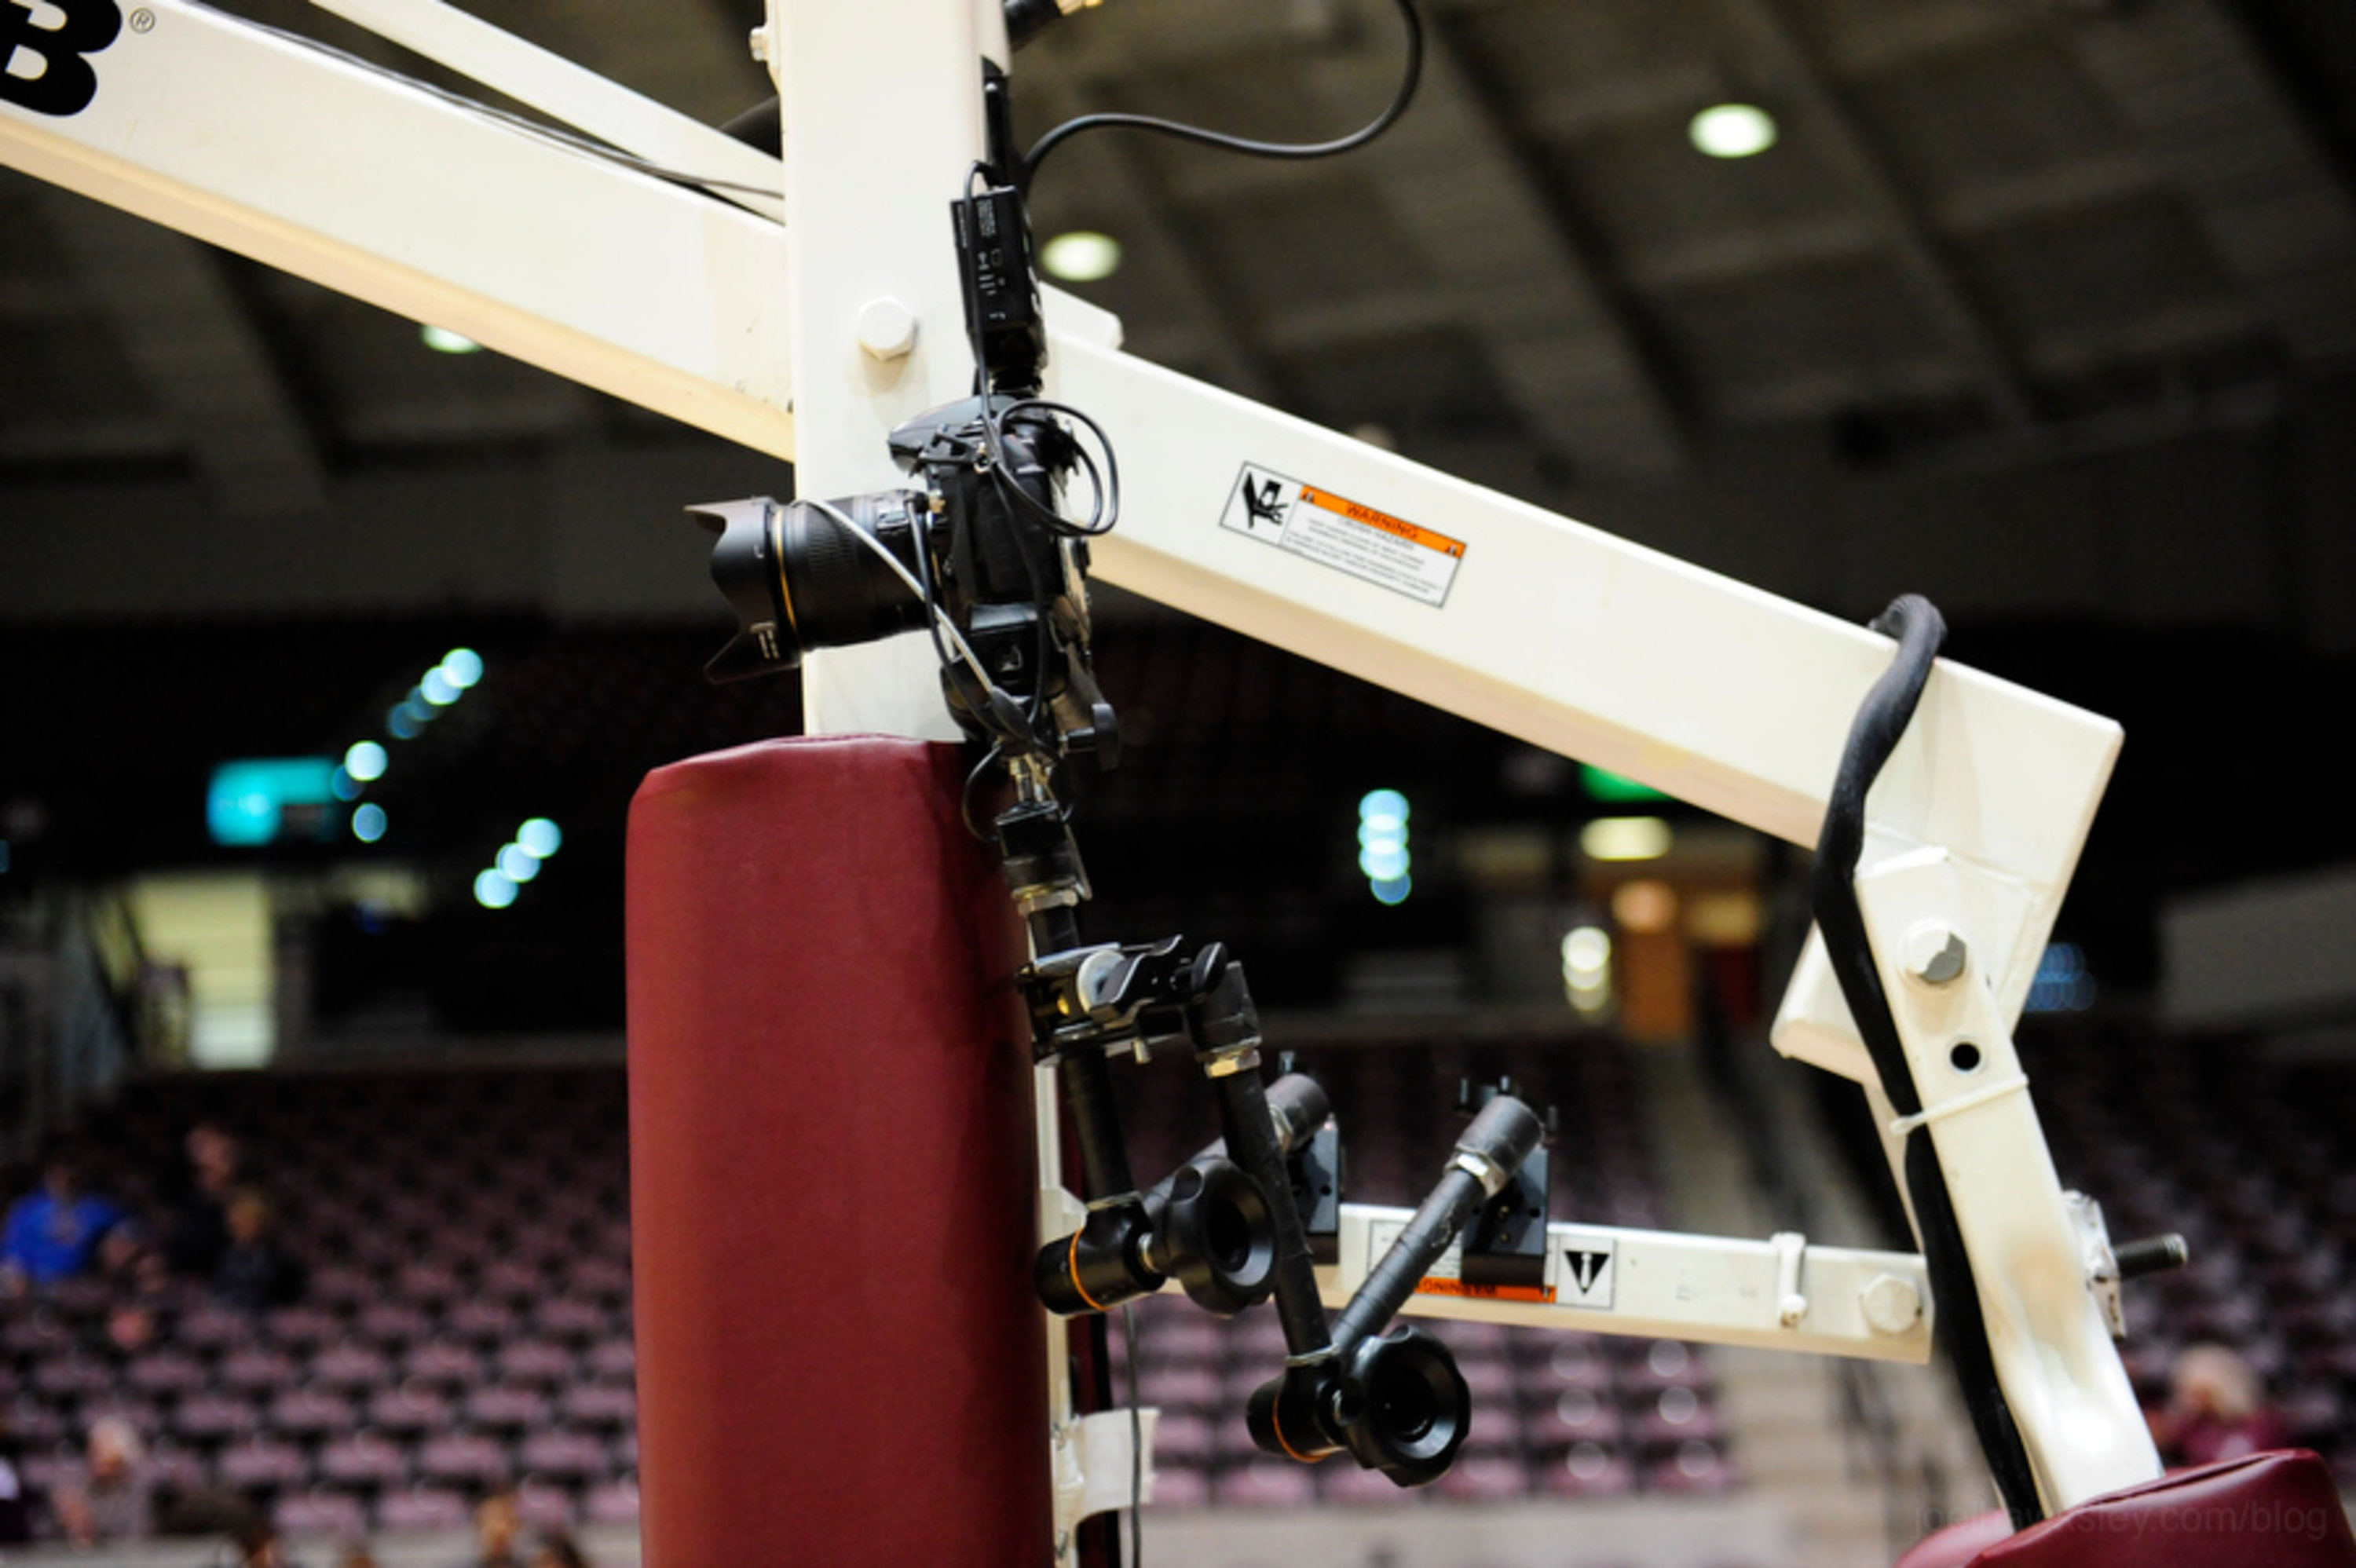 Nikon camera mounted to the post of a basketball hoop, viewed from the side